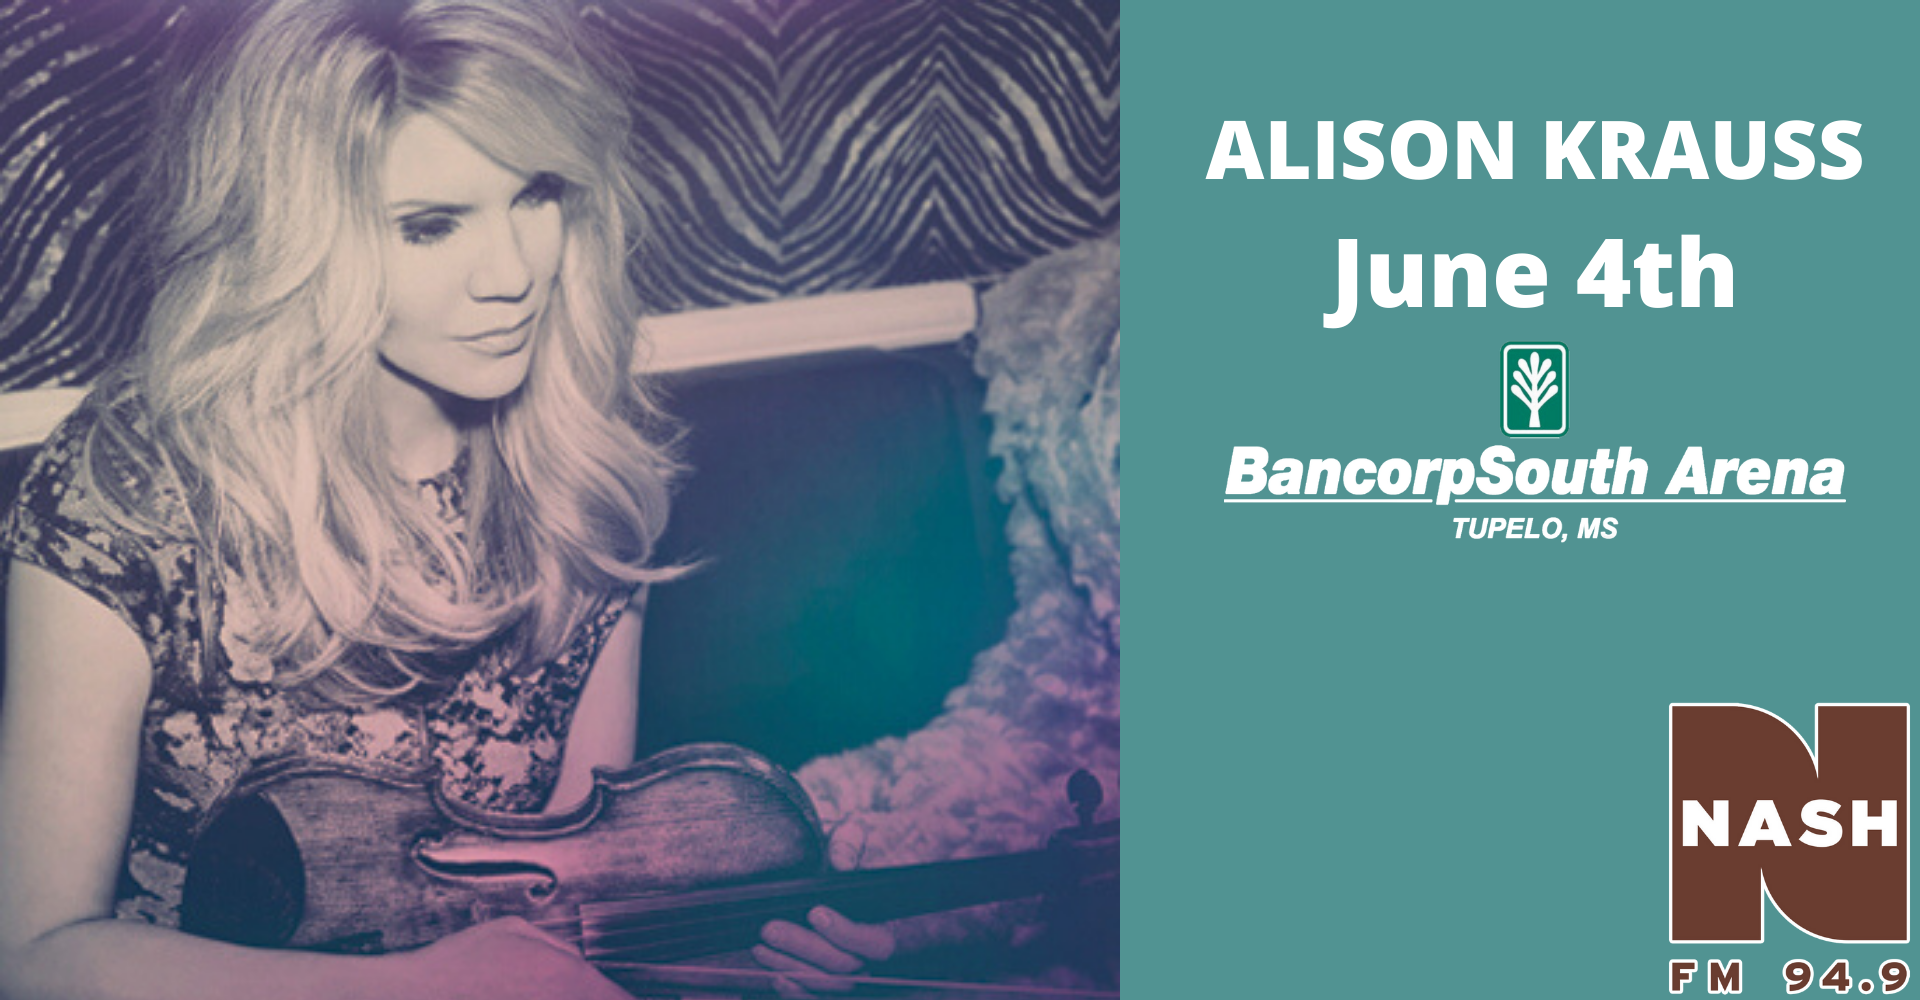 Alison Krauss June 4th BCS Arena